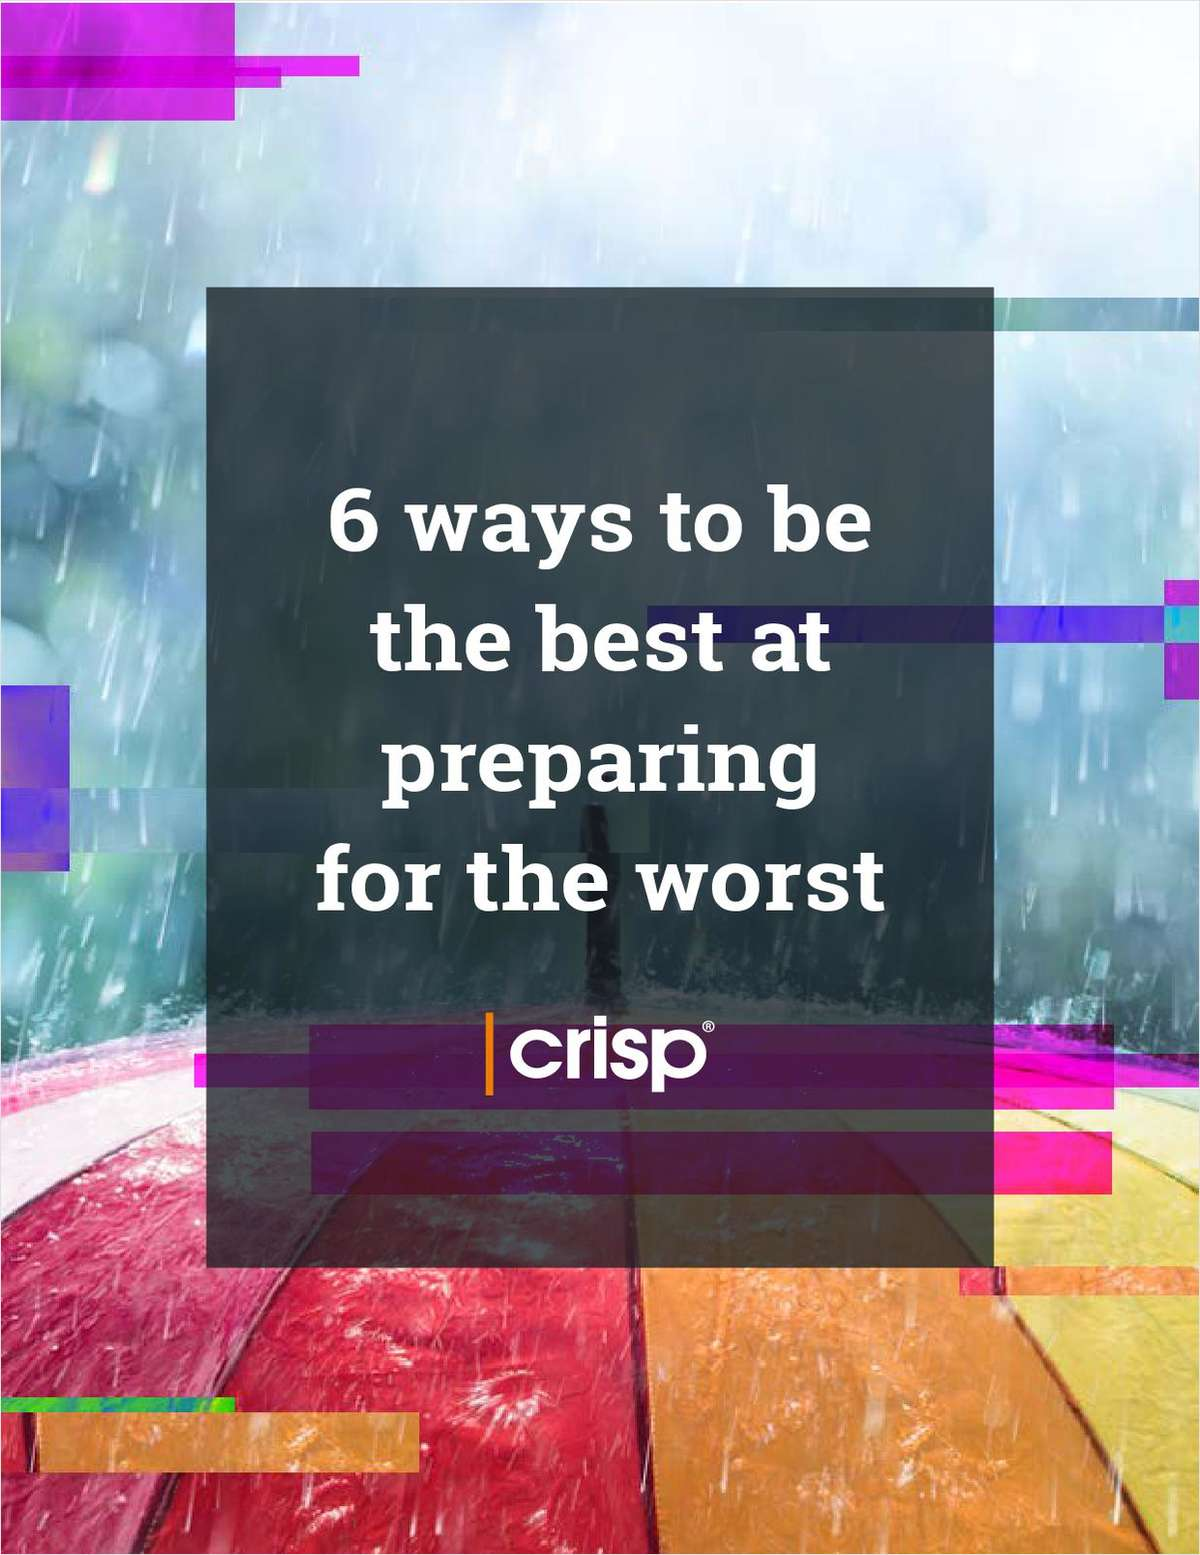 6 ways to be the best at preparing for the worst